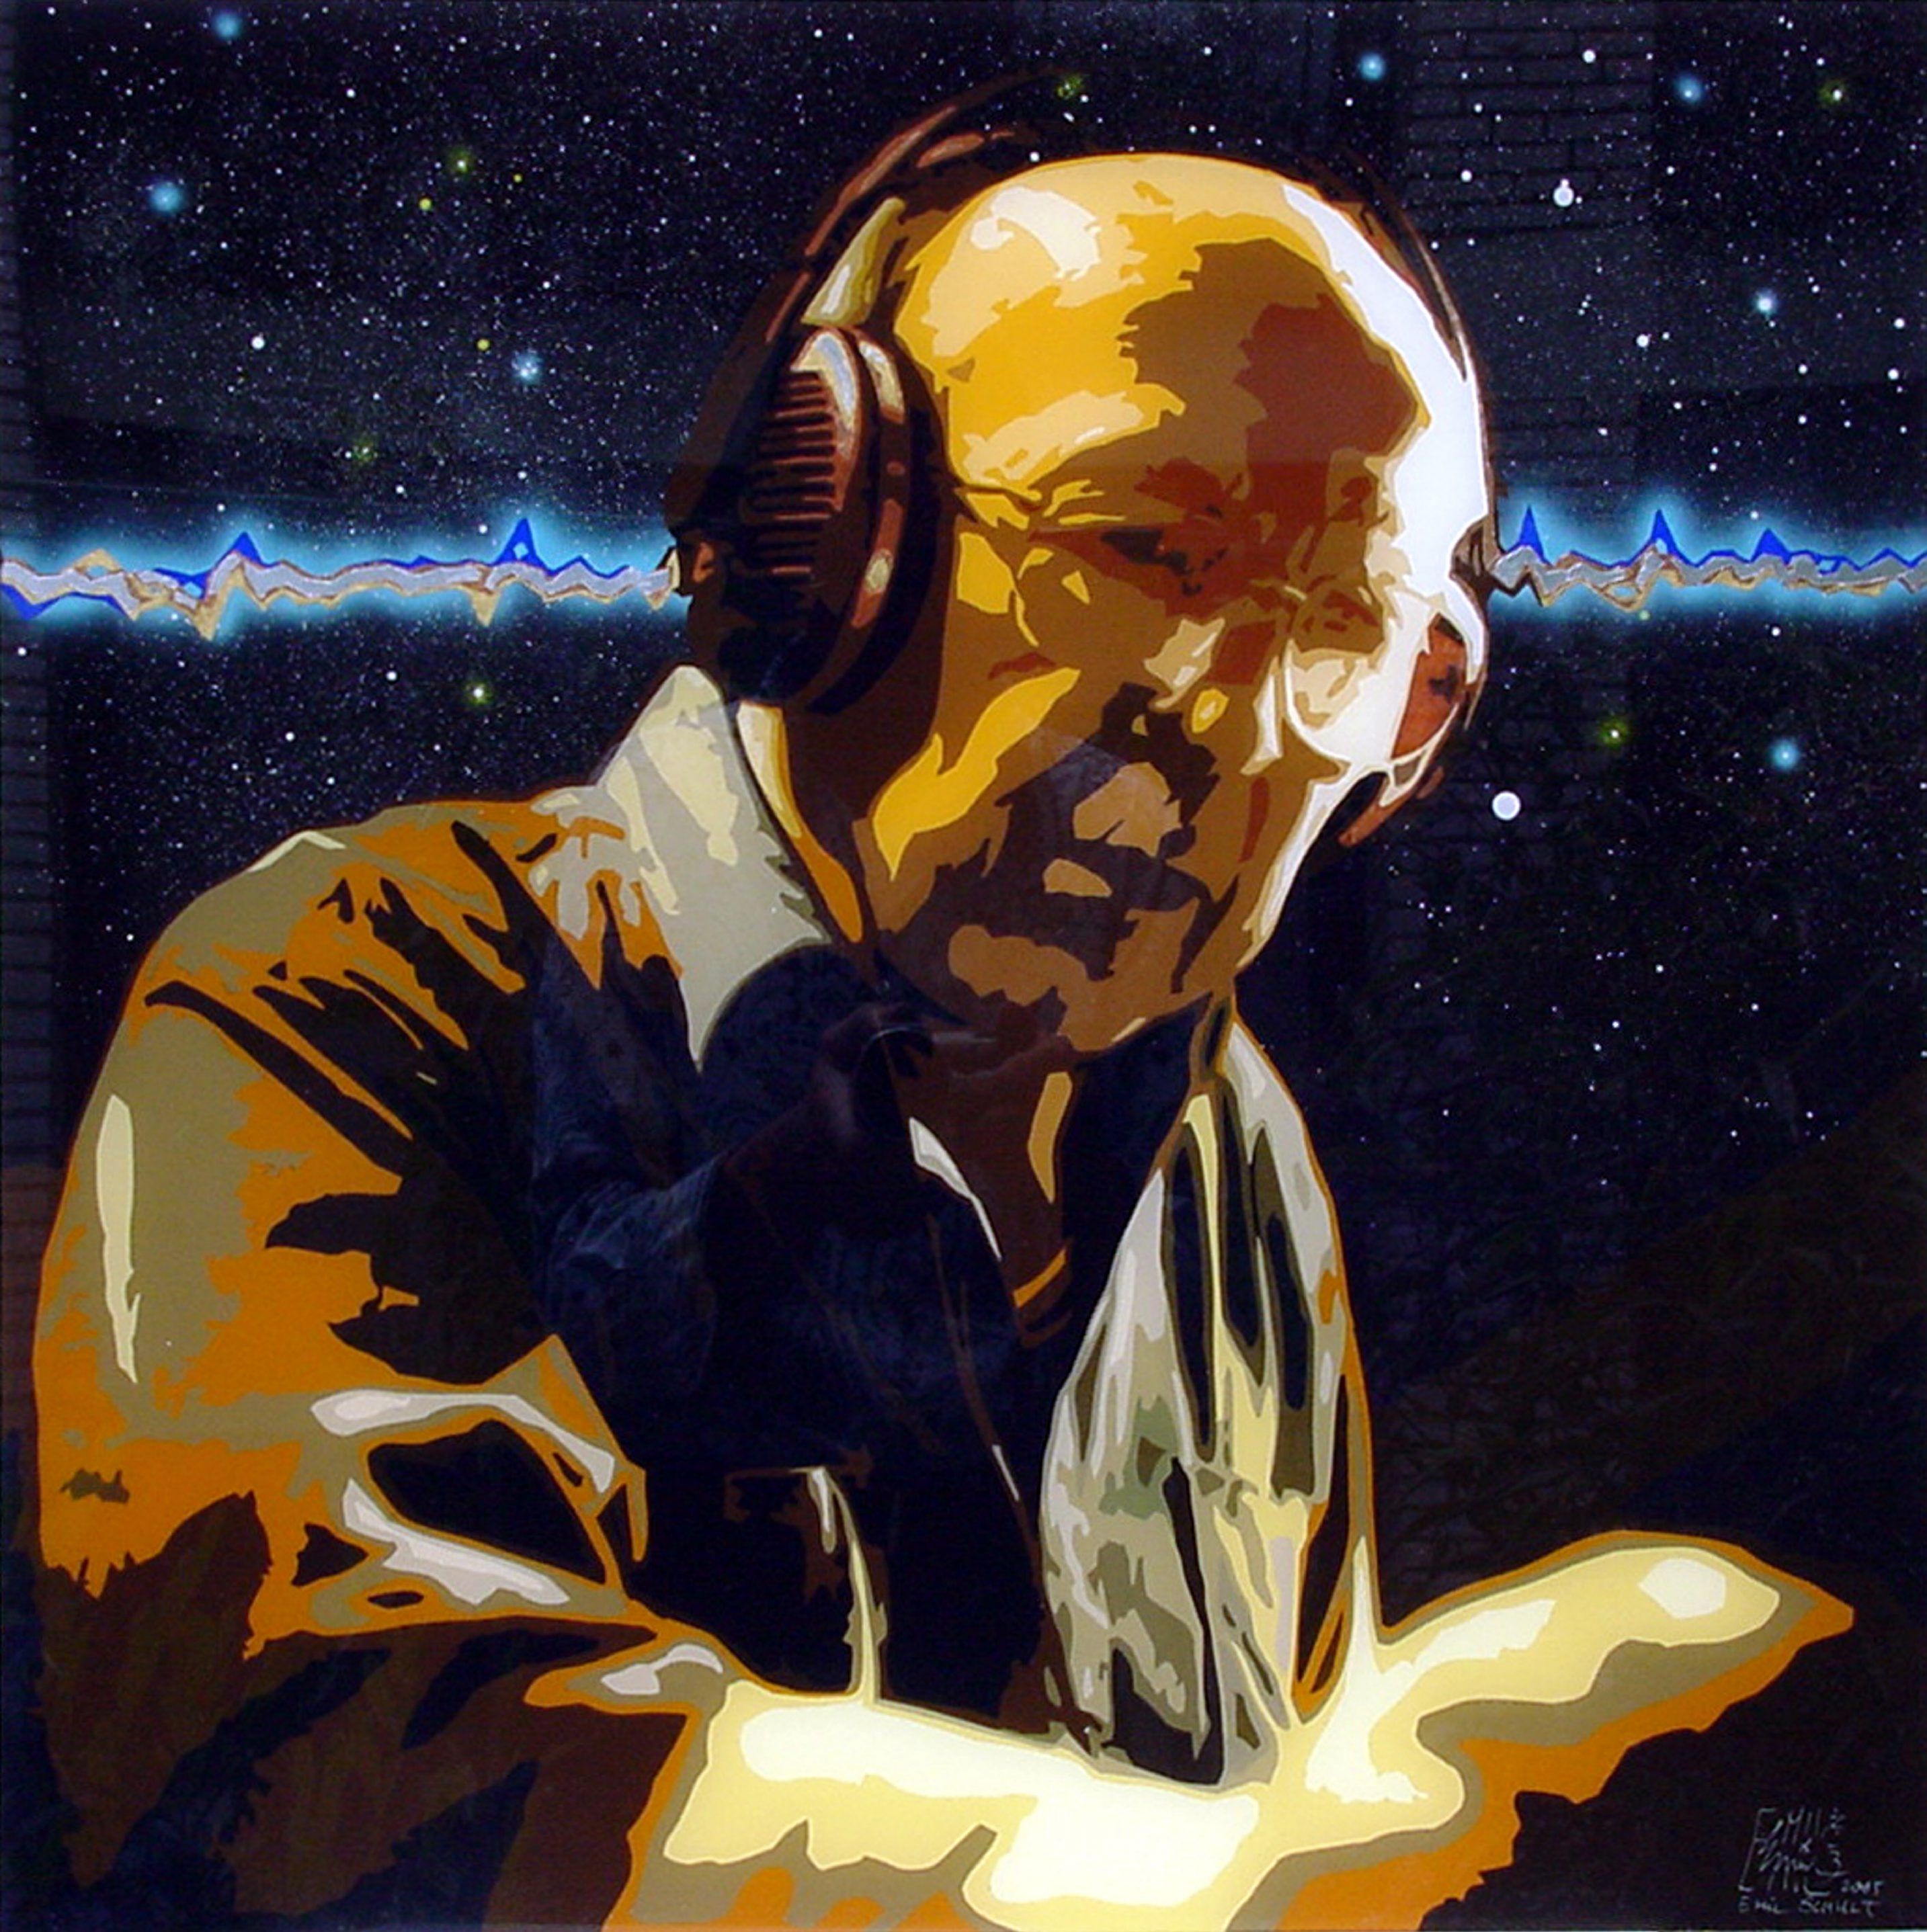 Electronic music pioneer Oskar Sala is the subject of artwork by Emil Schult.